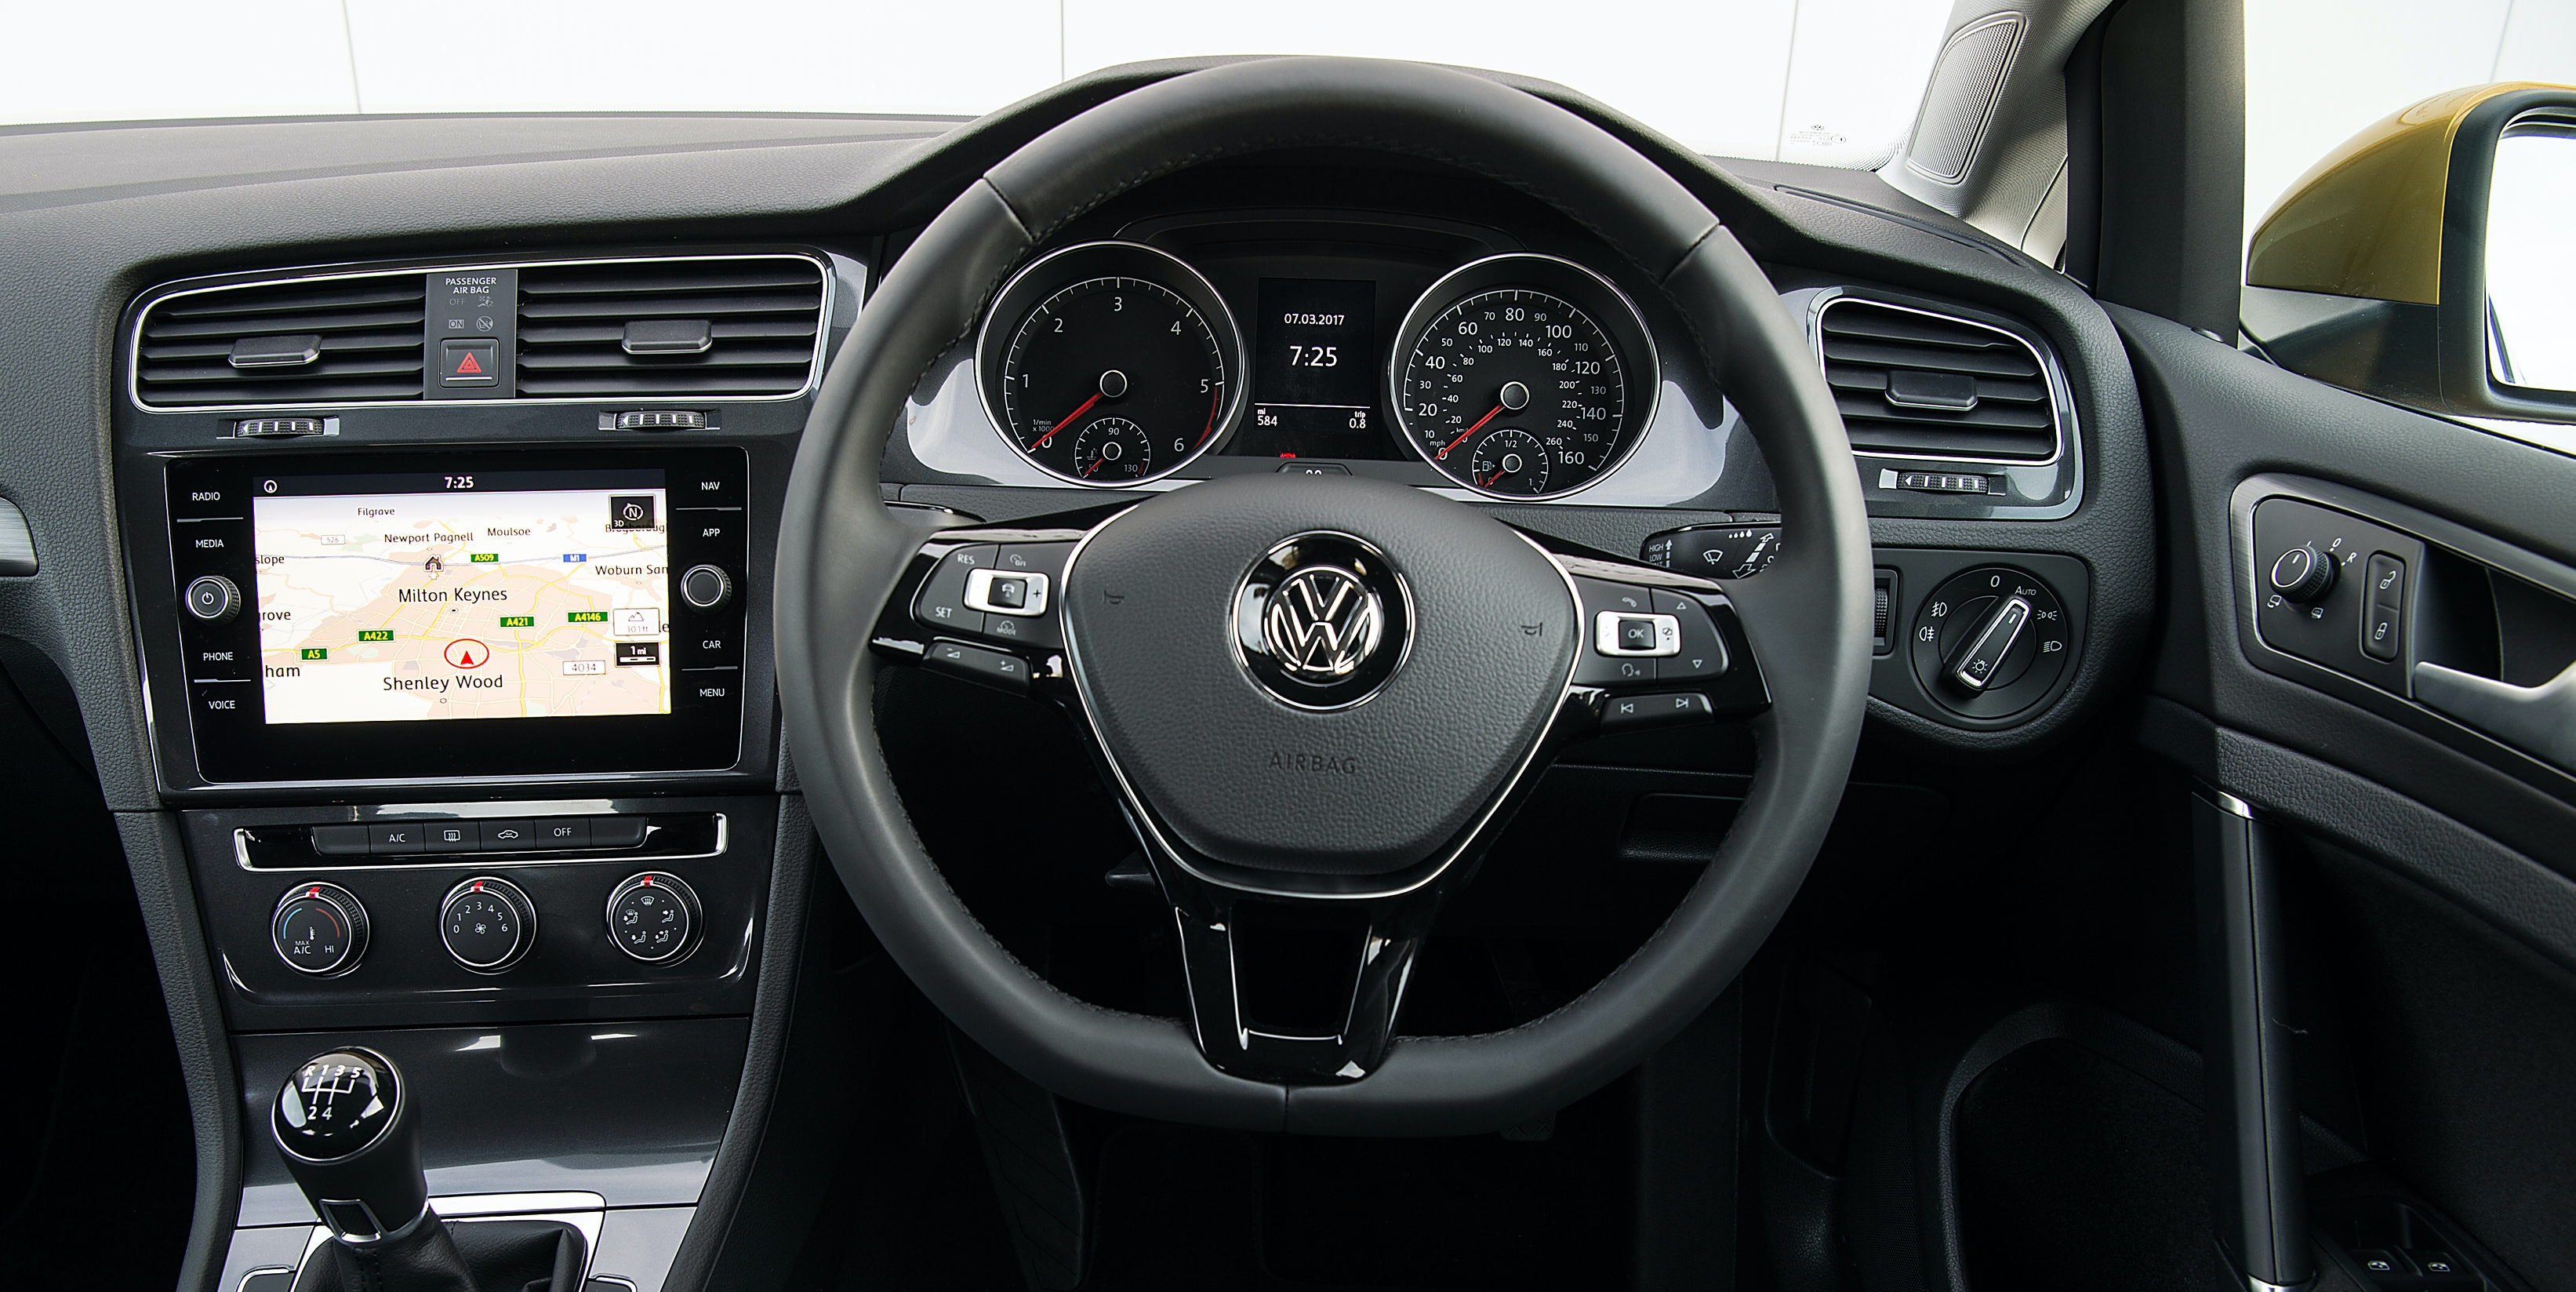 The Standard Eight Inch Infotainment Screen (pictured) Is Easy To Use